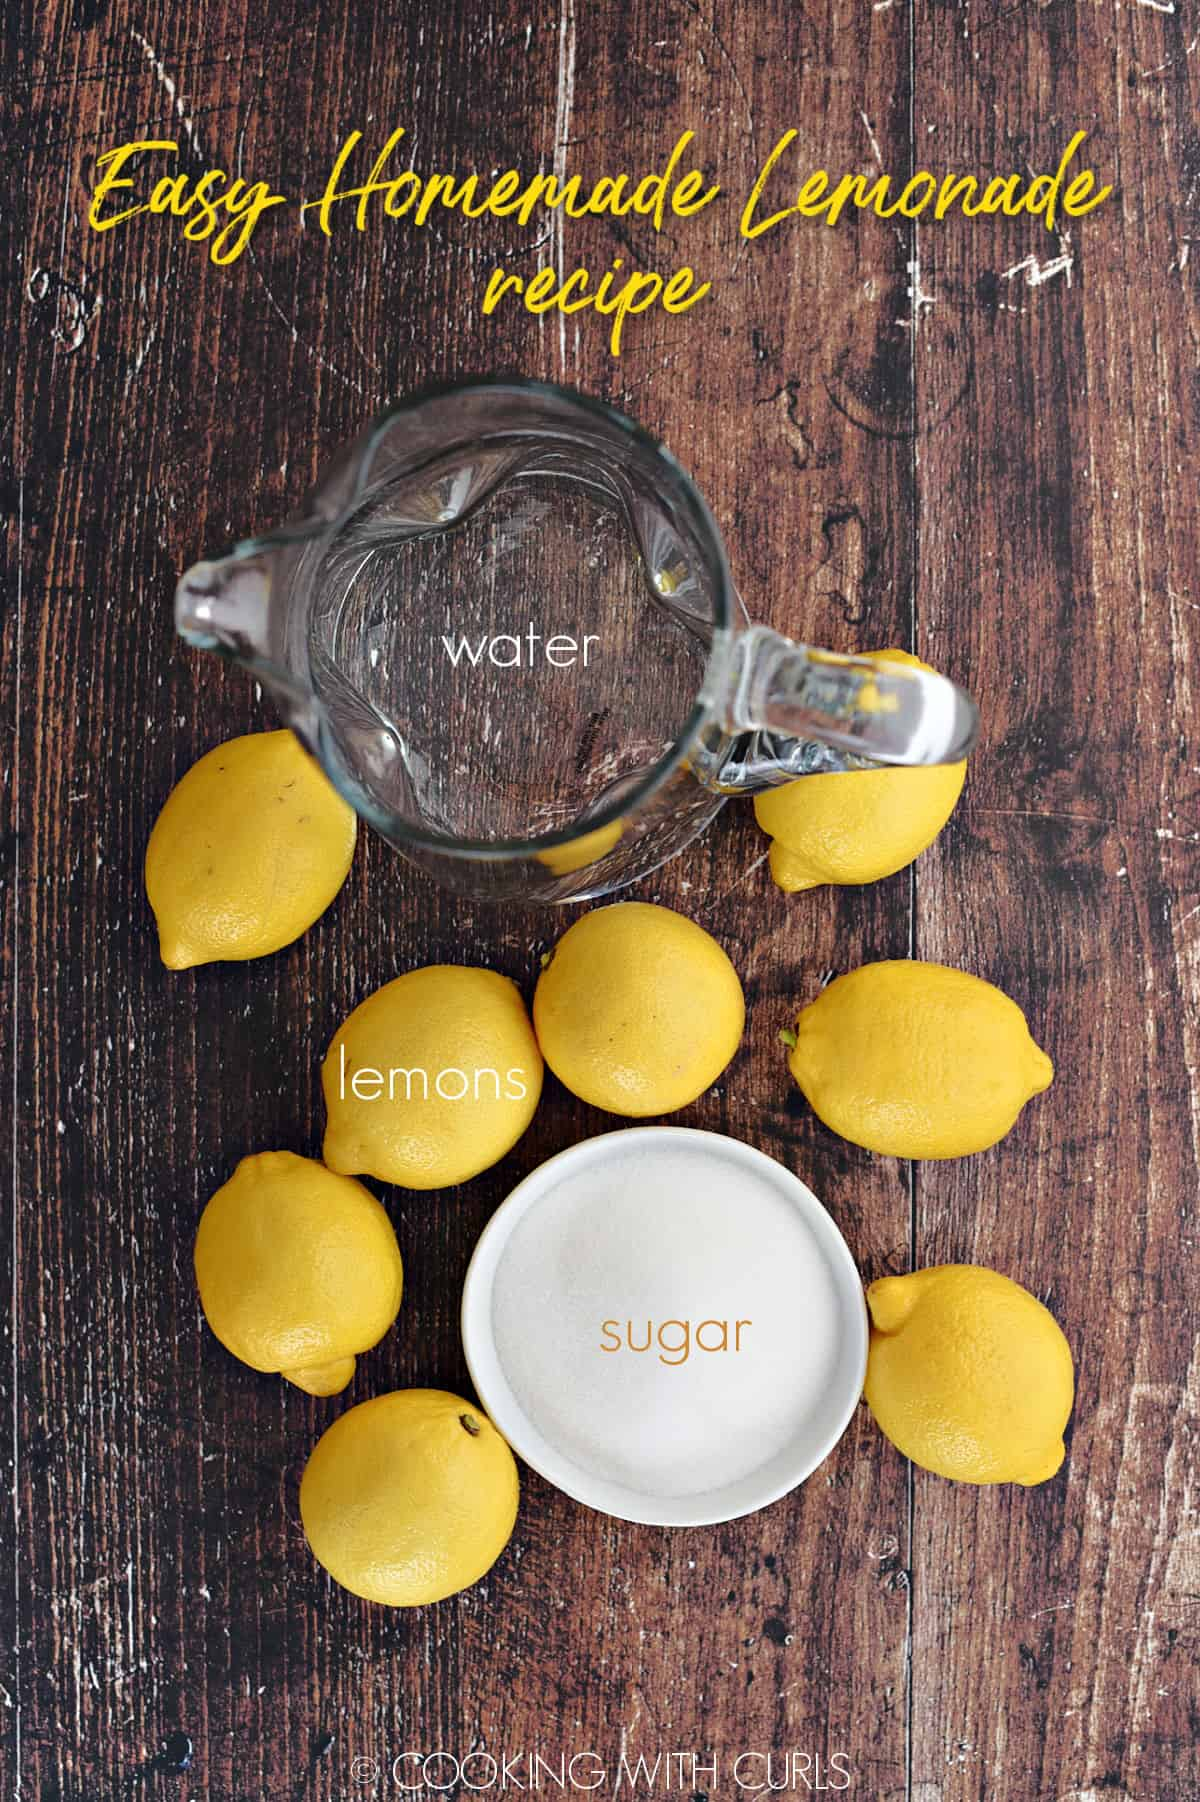 Water in a glass pitcher, 8 lemons and a bowl of sugar.